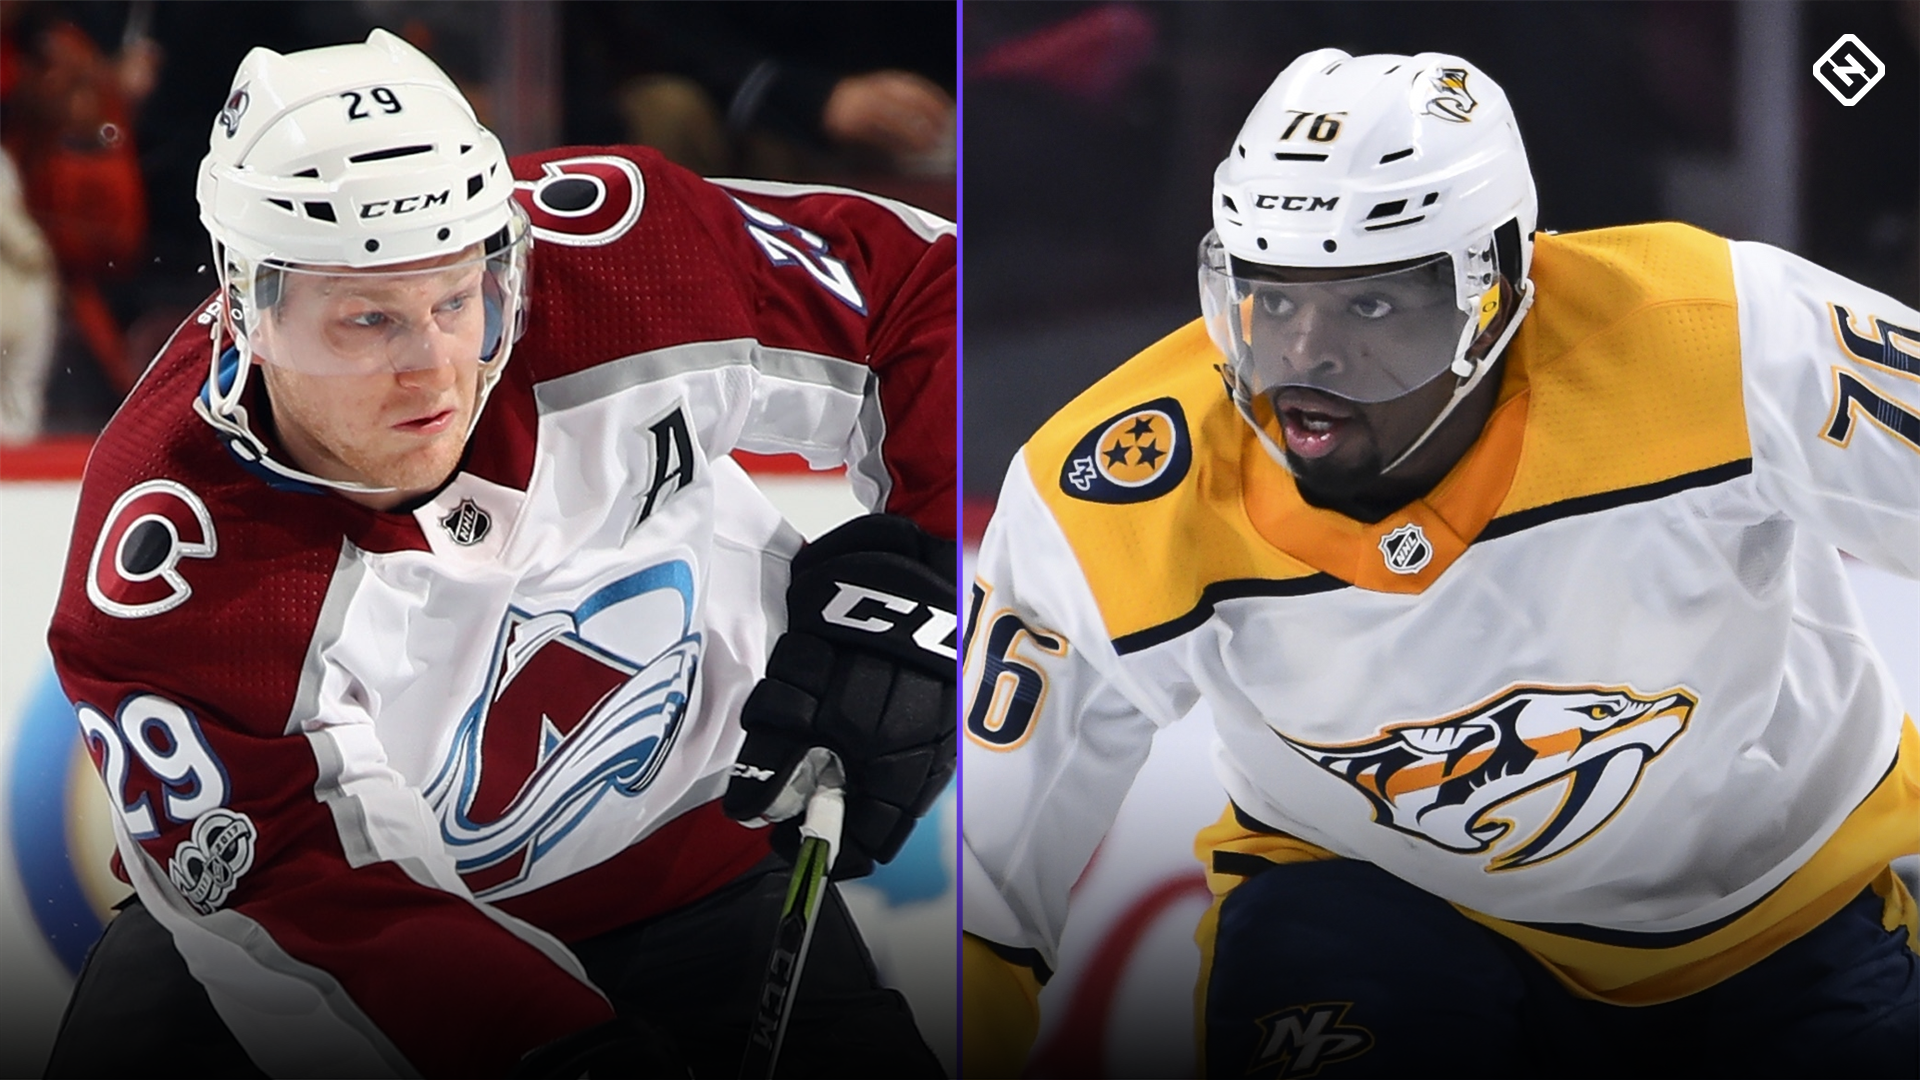 Avalanche vs. Predators first-round playoff schedule announced